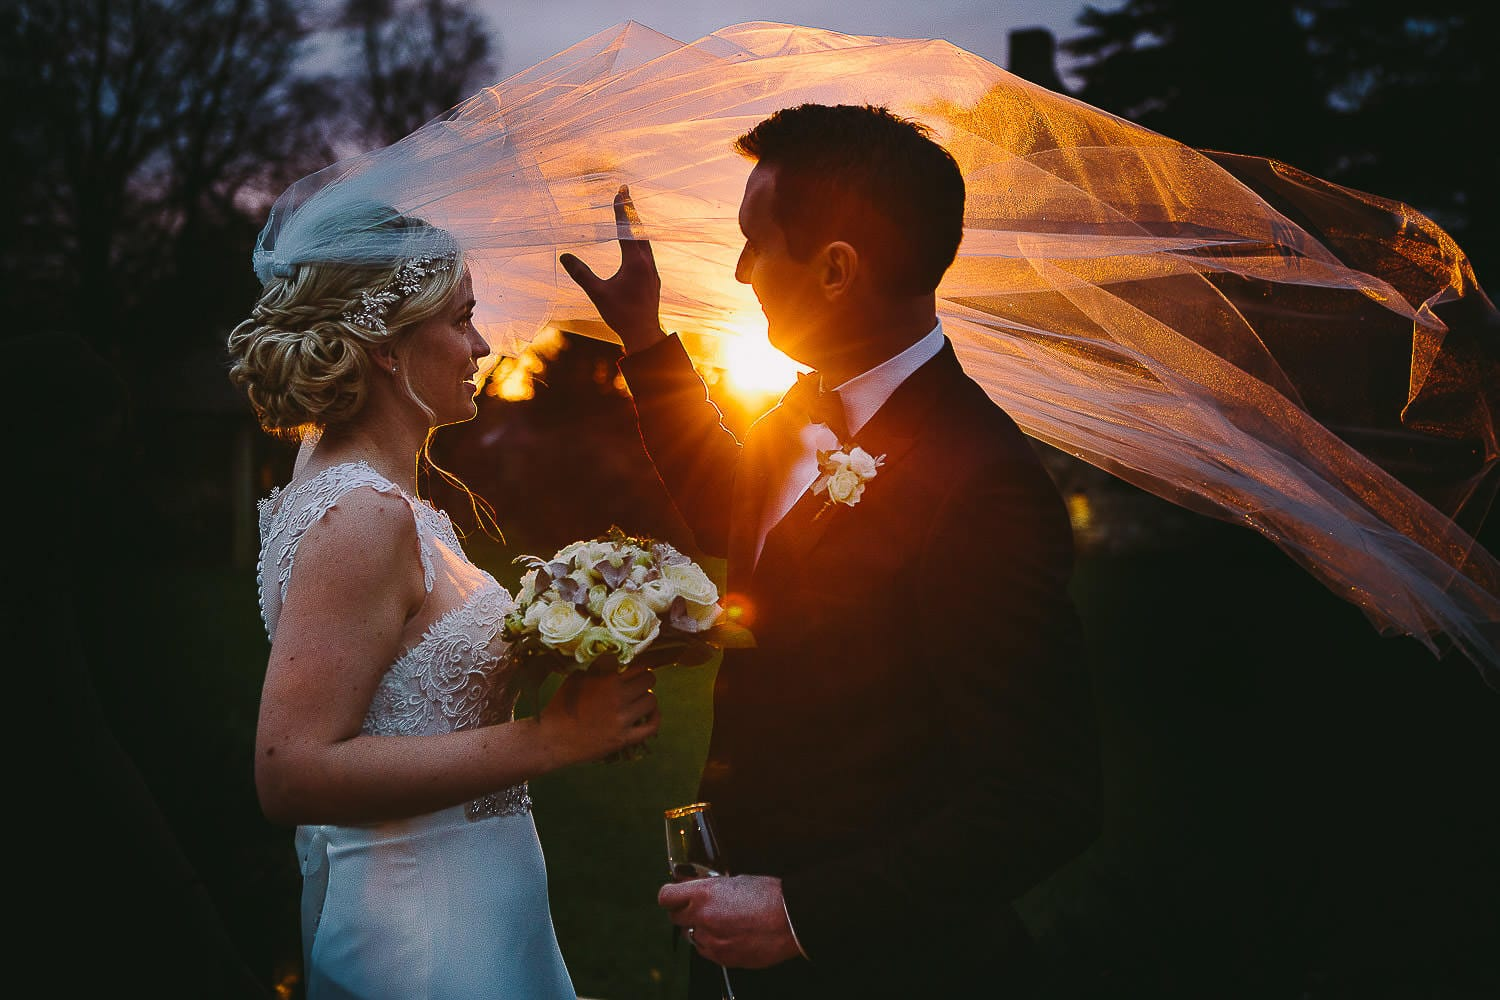 The bride and groom at sunset on New Year's Eve